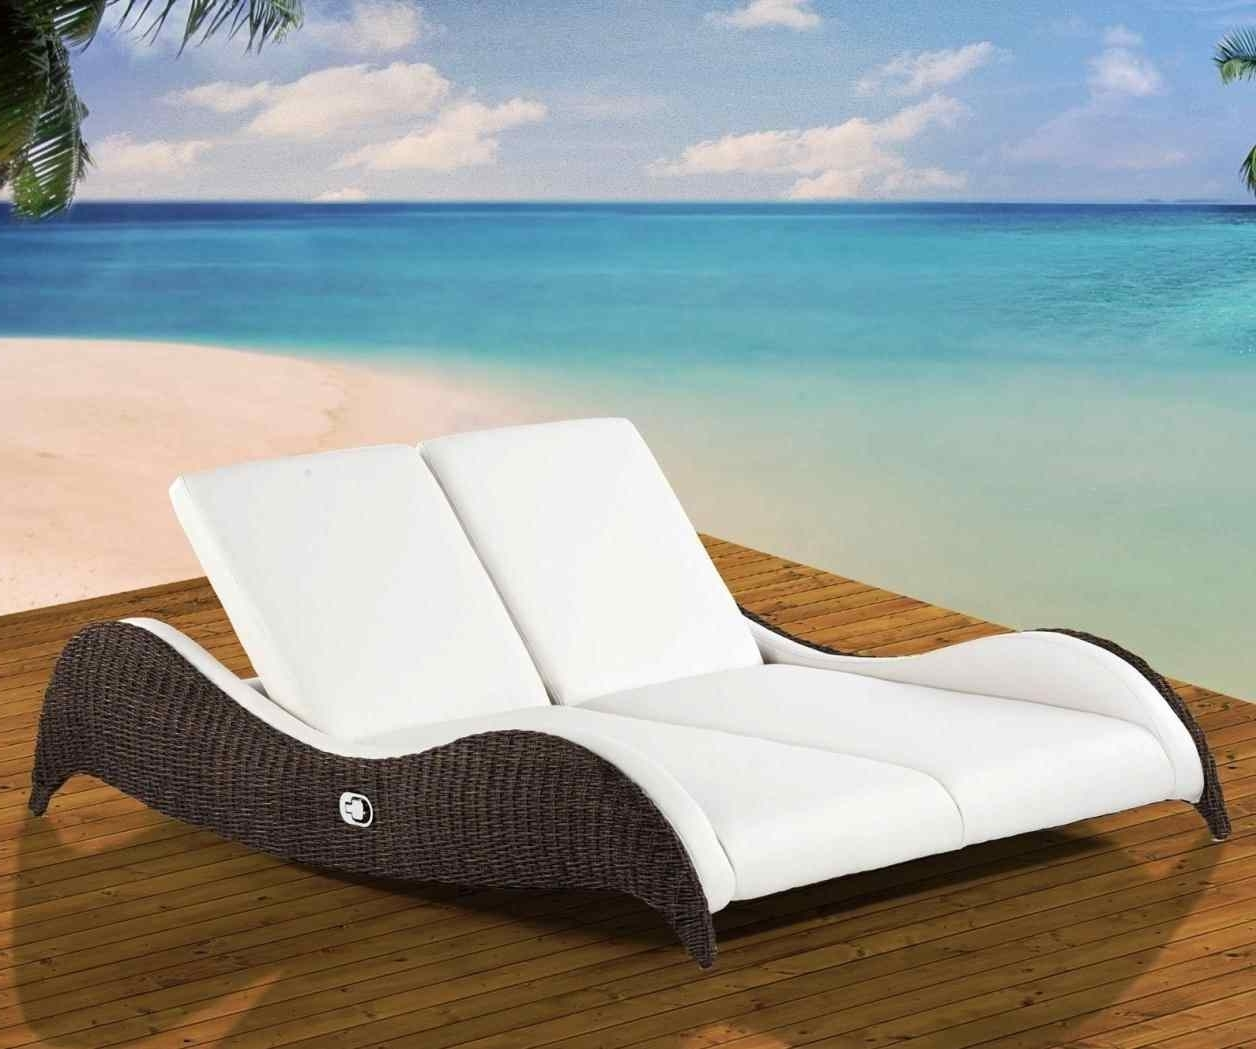 Lounge Chair : Lounge Pool Chairs Walmart S Home Decorating Chair With Regard To Most Up To Date Chaise Lounge Chairs At Sears (View 9 of 15)